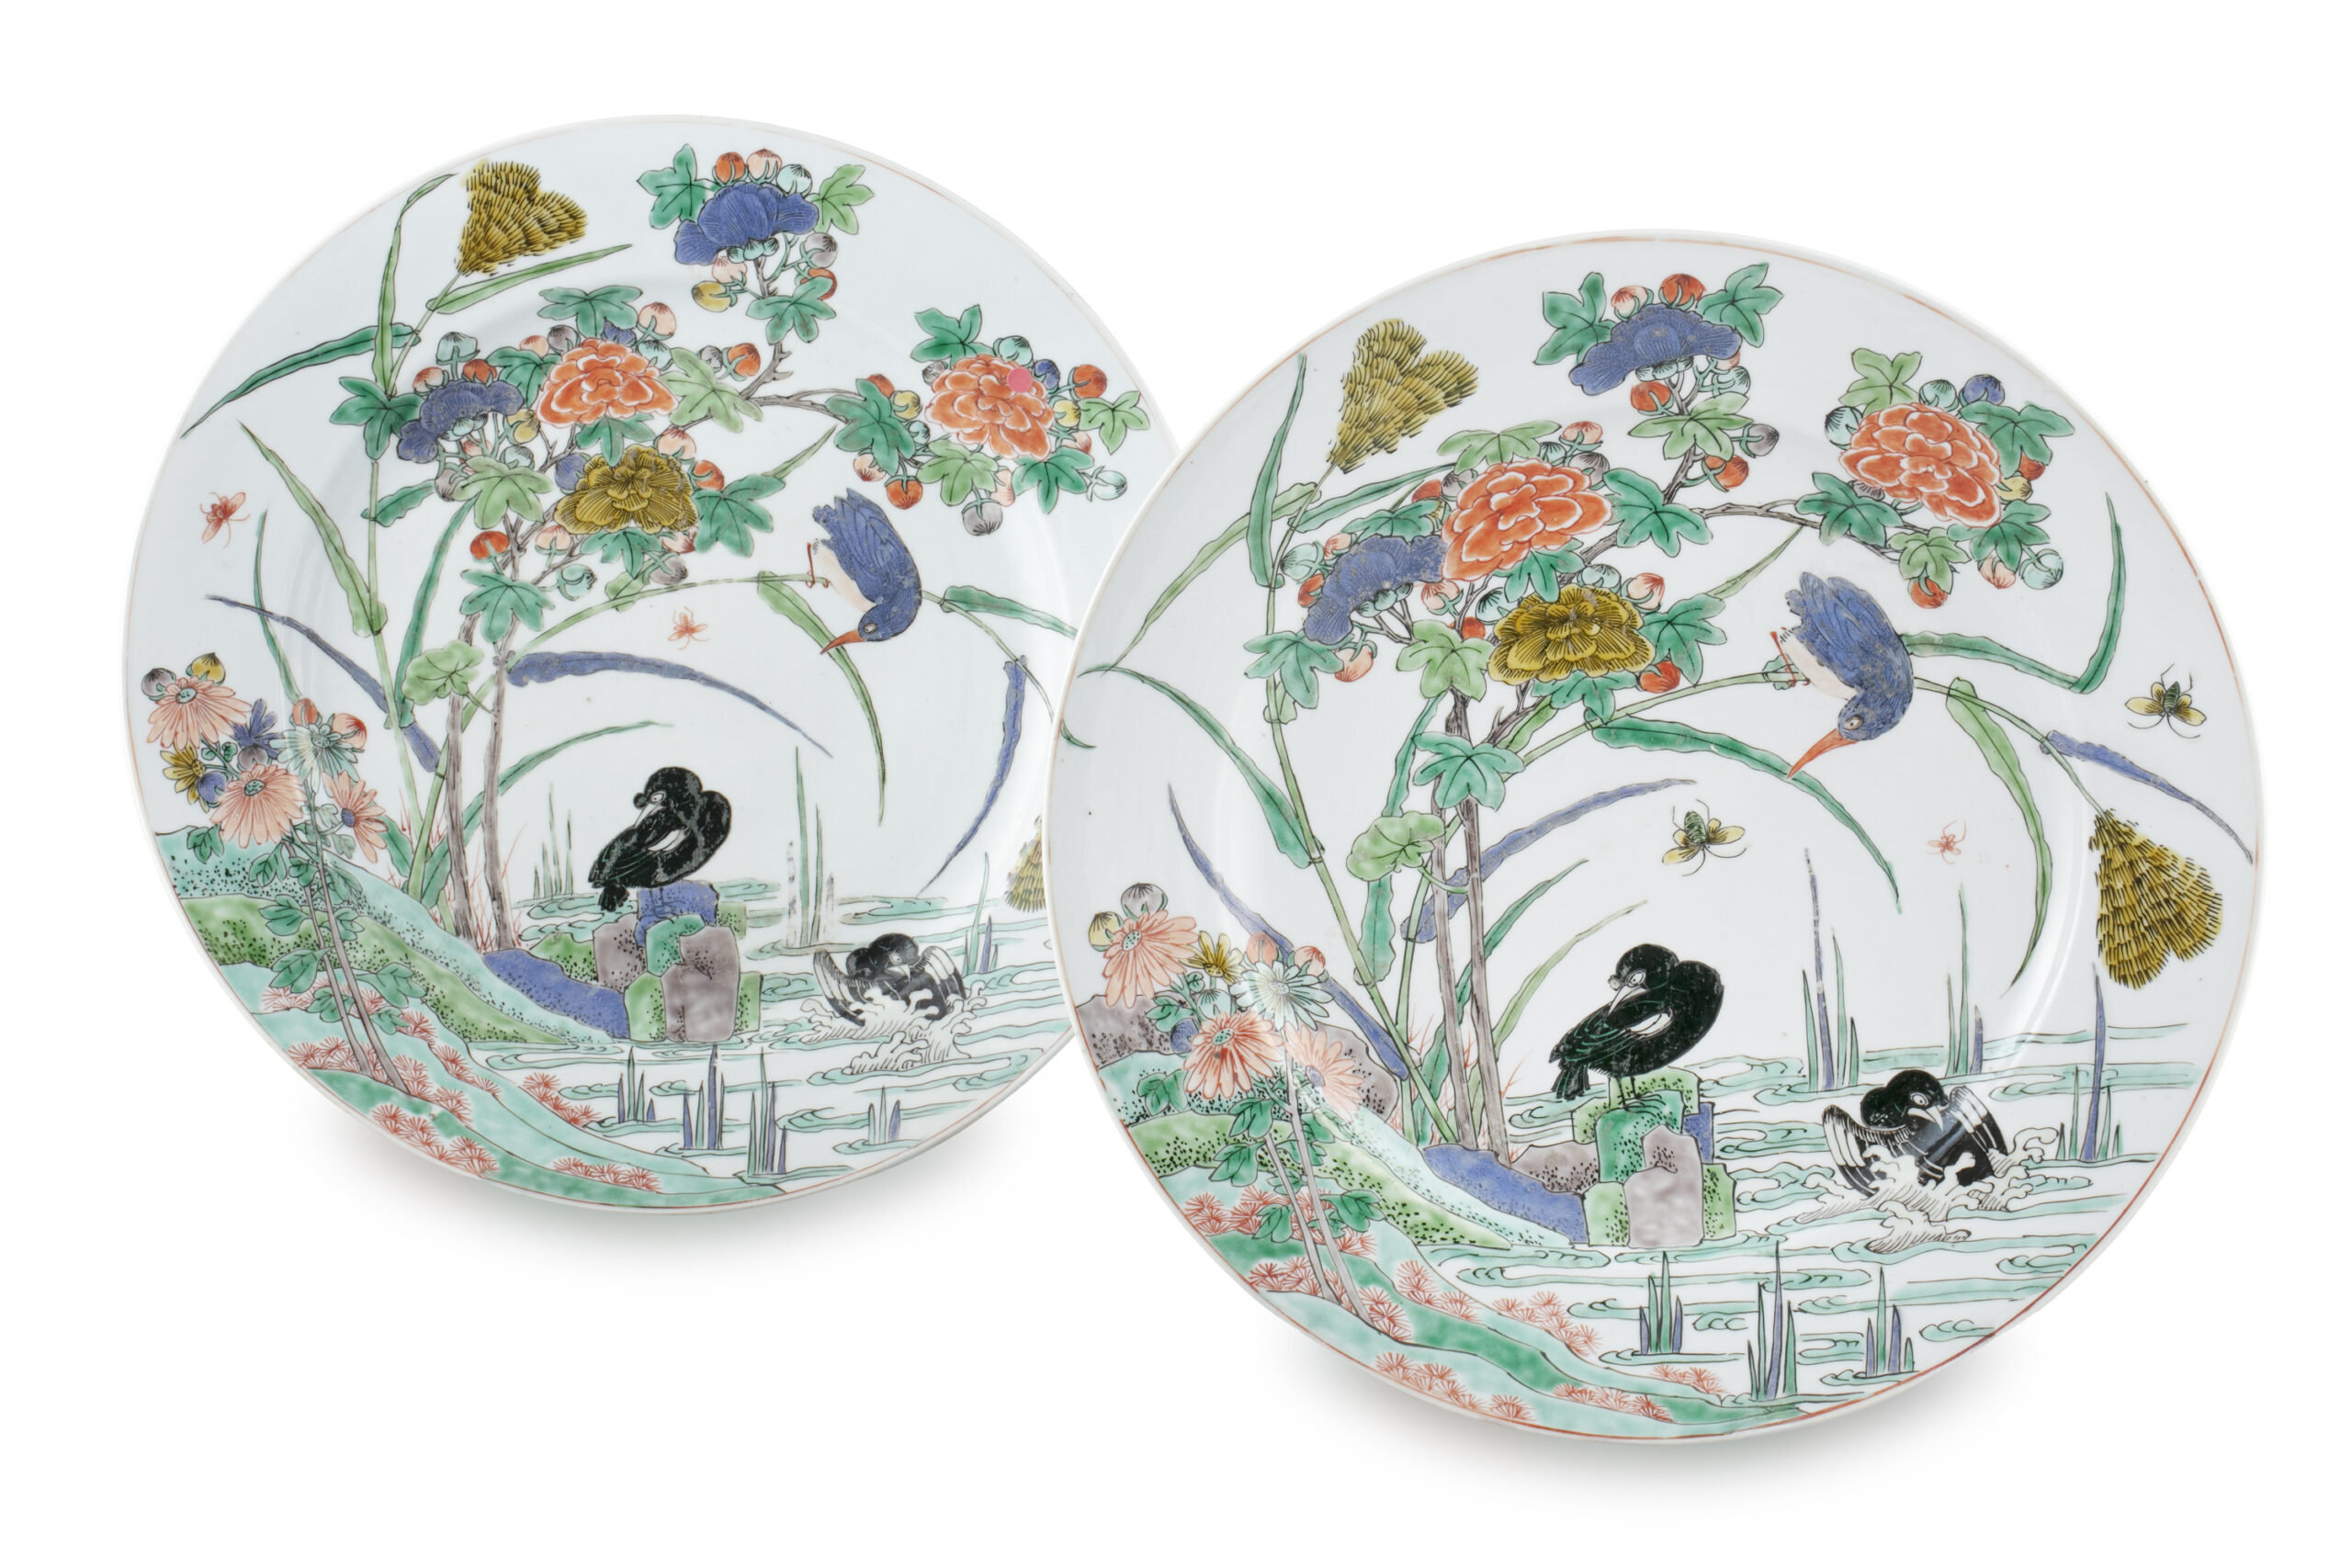 A PAIR OF FAMILLE VERTE 'FLYCATCHER' DISHES, CHINA, QING DYNASTY, KANGXI PERIOD